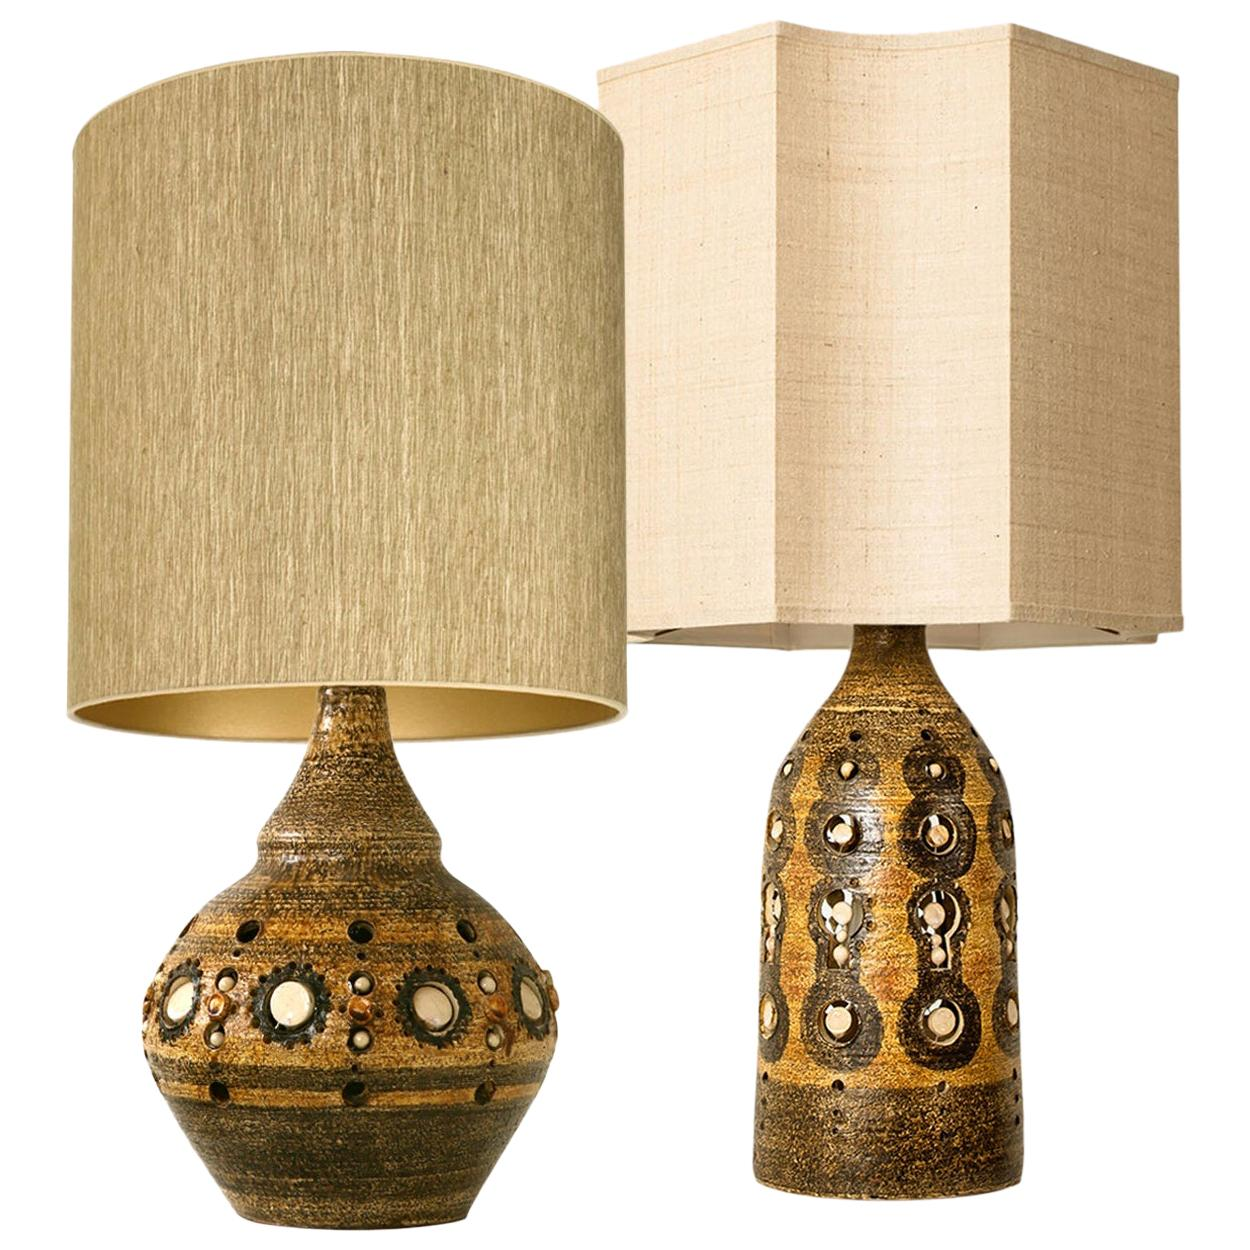 Pair of Georges Pelletier Table Lamps, circa 1970, France